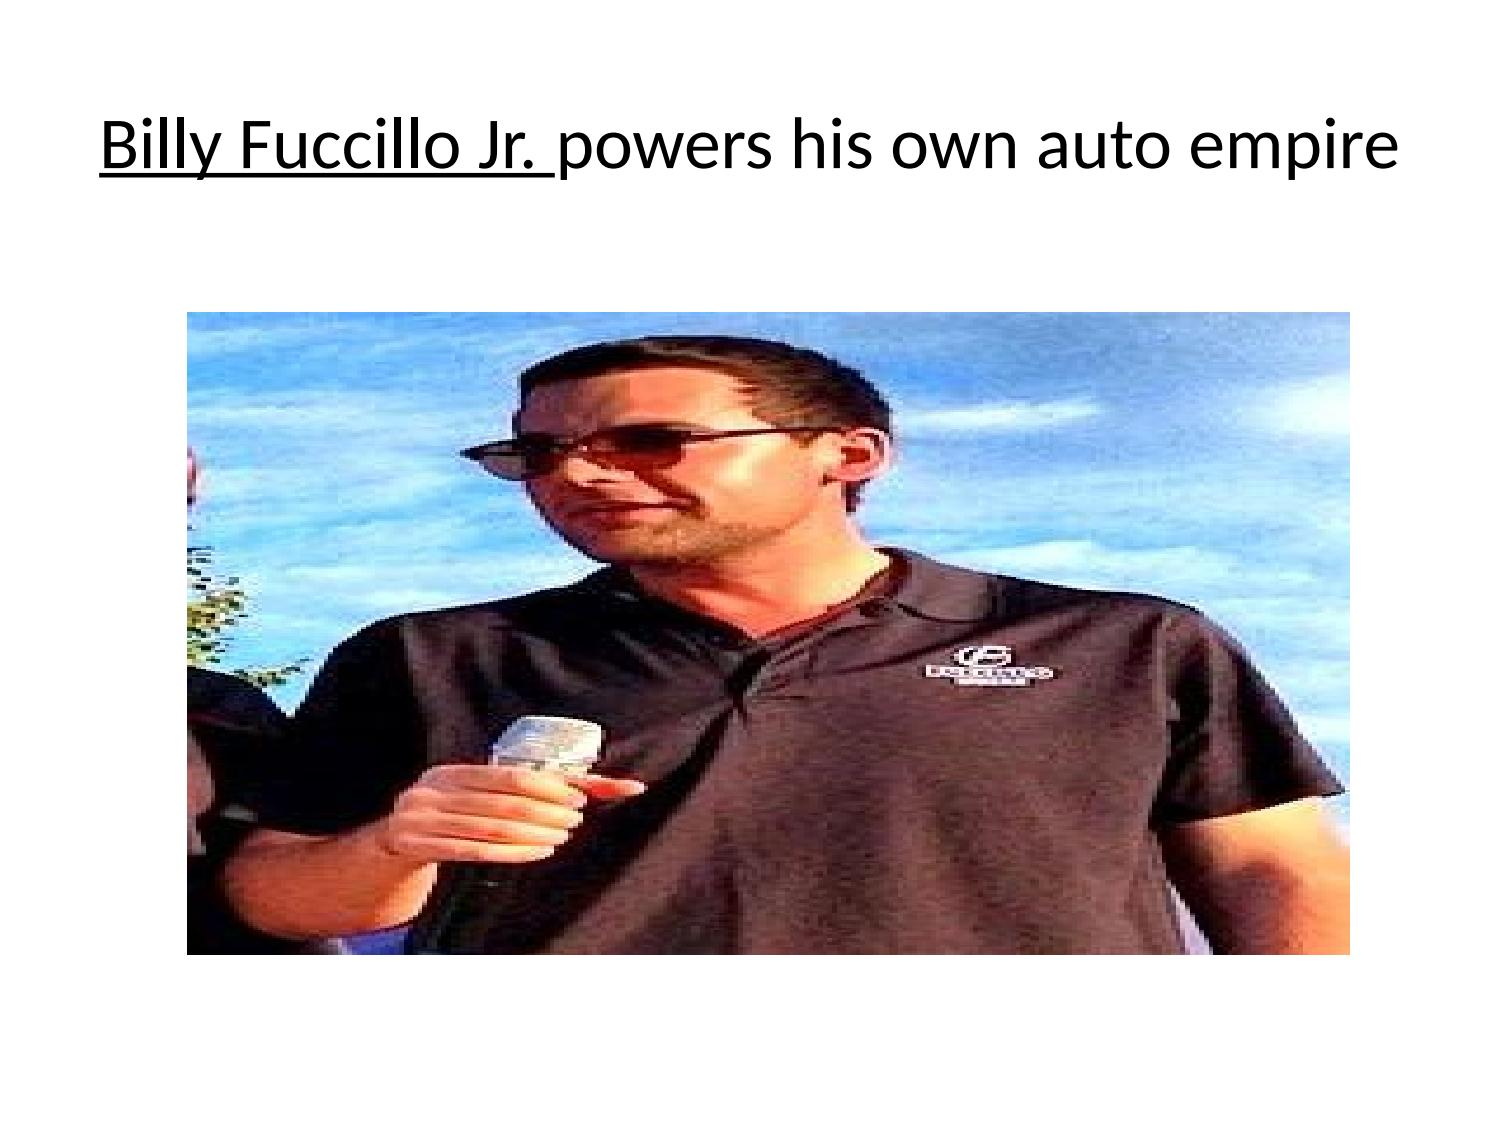 Billy Fuccillo Jr  powers his own auto empire by Billy